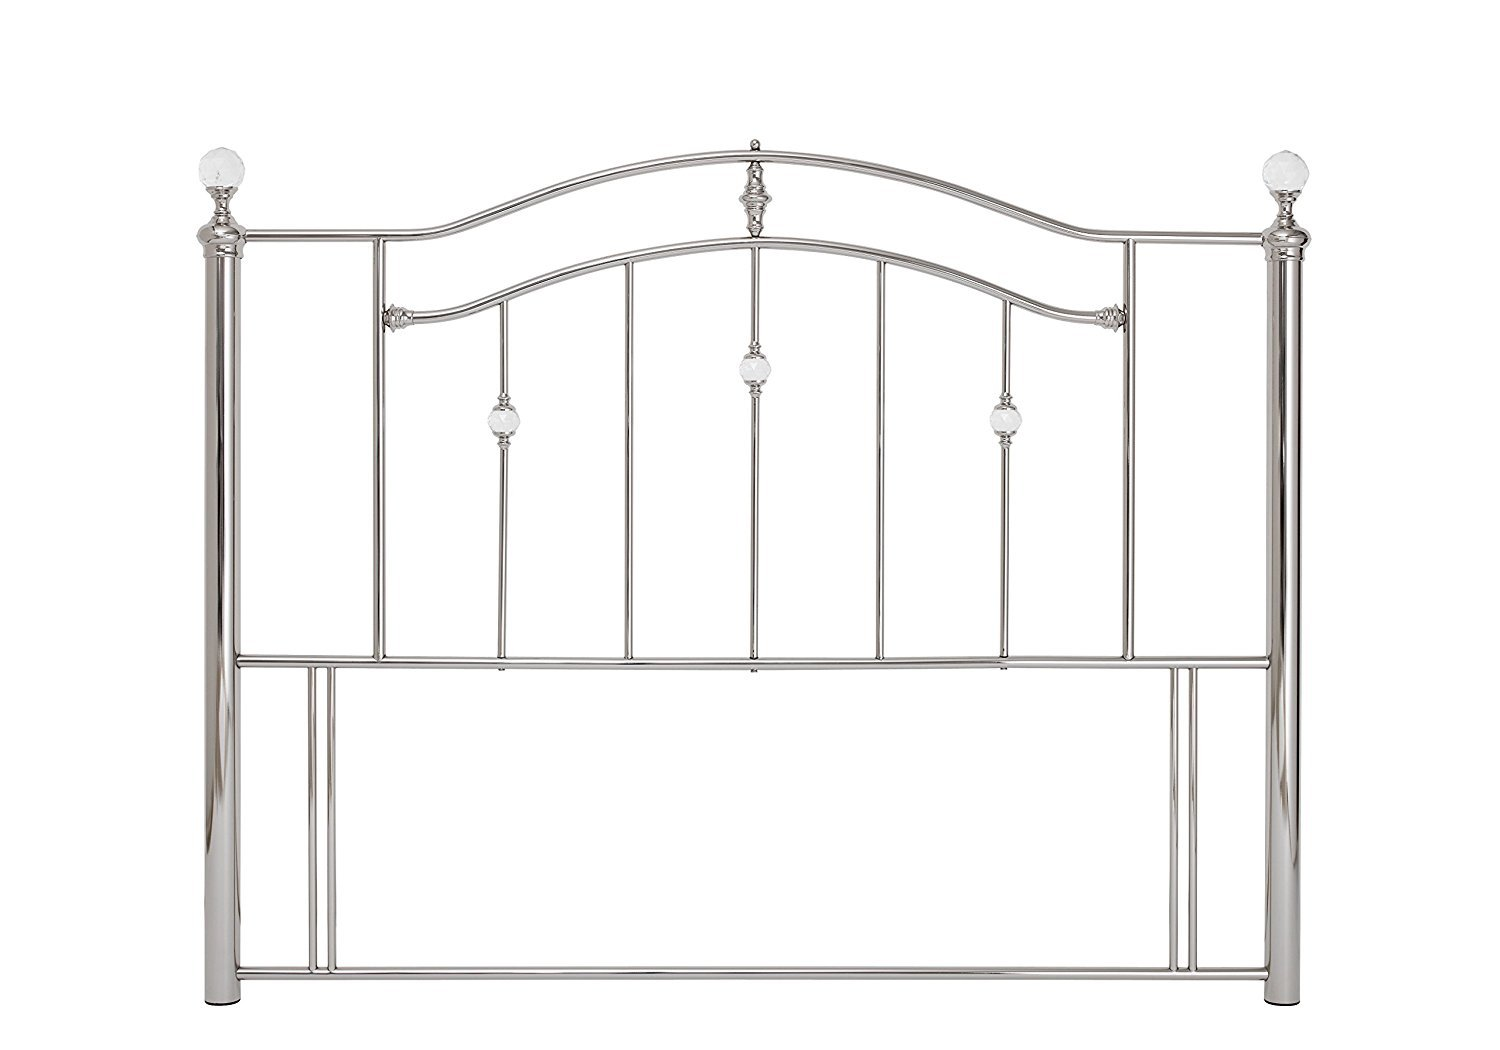 Save On Goods UK Silver nickel,Crystal gem ball tubular metal headboard bed head end.4ft small double, 4ft6, 5ft King, 6ft Super King (4ft Small double)